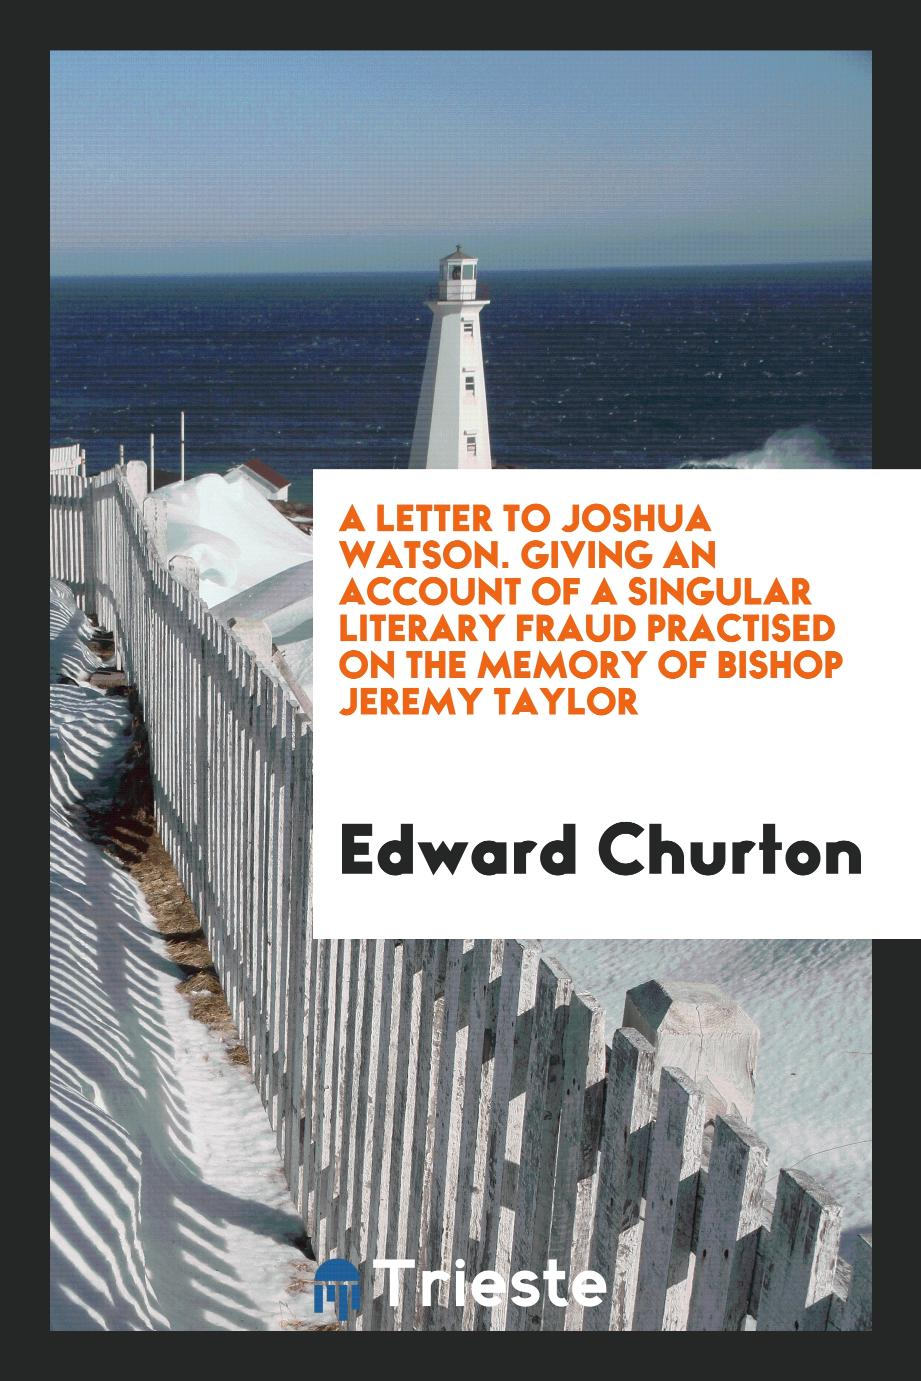 A Letter to Joshua Watson. Giving an Account of a Singular Literary Fraud Practised on the Memory of Bishop Jeremy Taylor